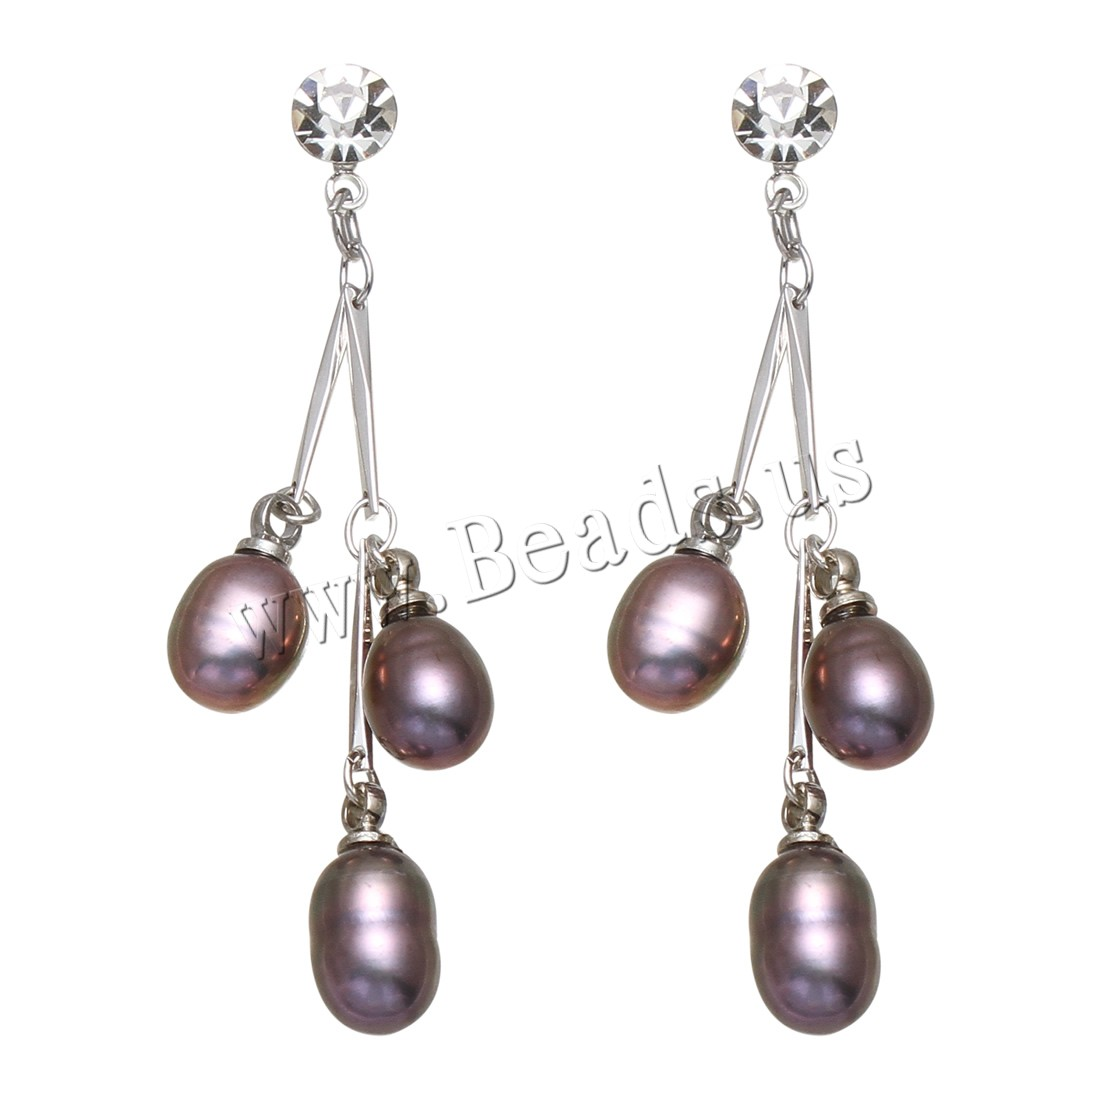 Buy Freshwater Pearl Drop Earring Brass platinum color plated woman & rhinestone purple 6-7mm 39-42mm Sold Pair